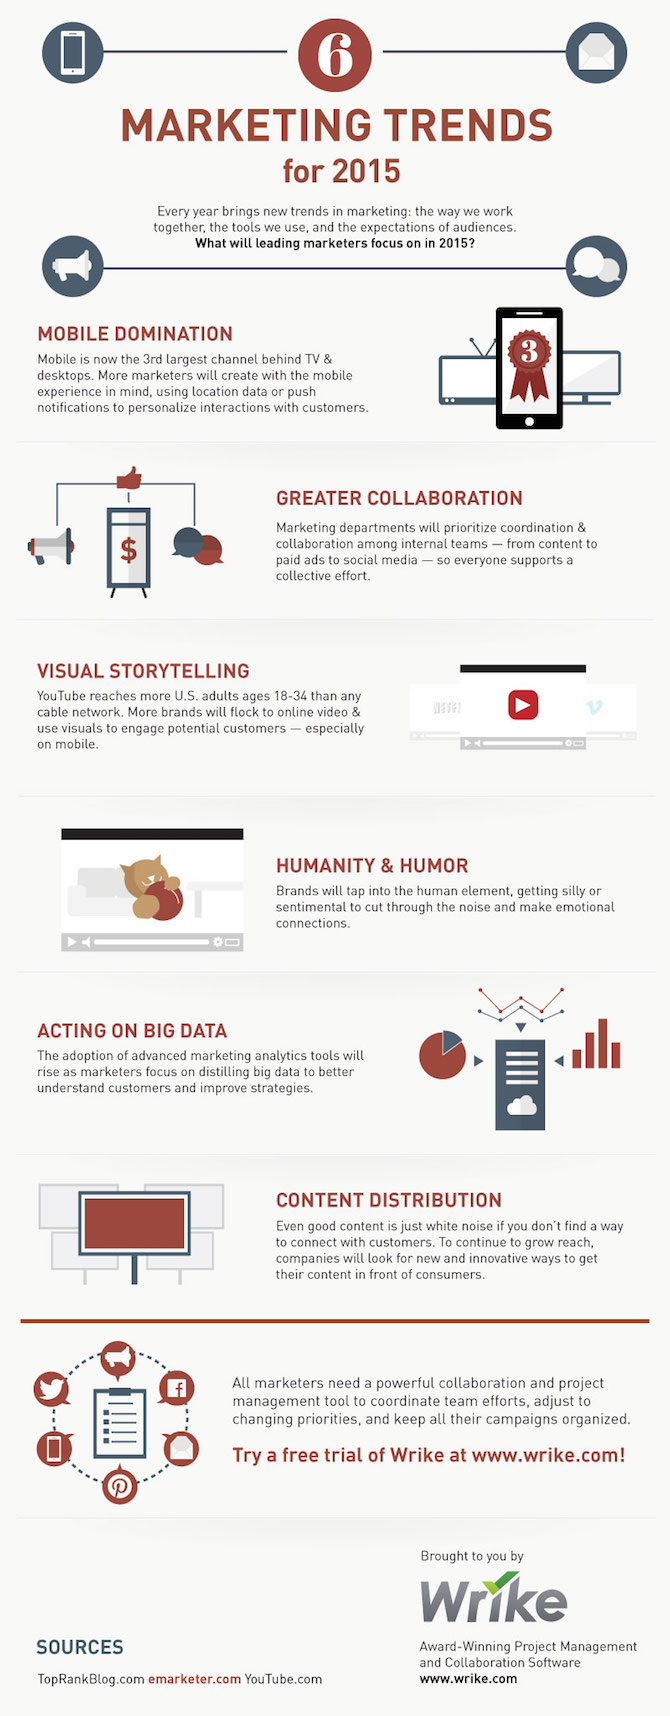 Top Marketing Trends for 2015 #infographic